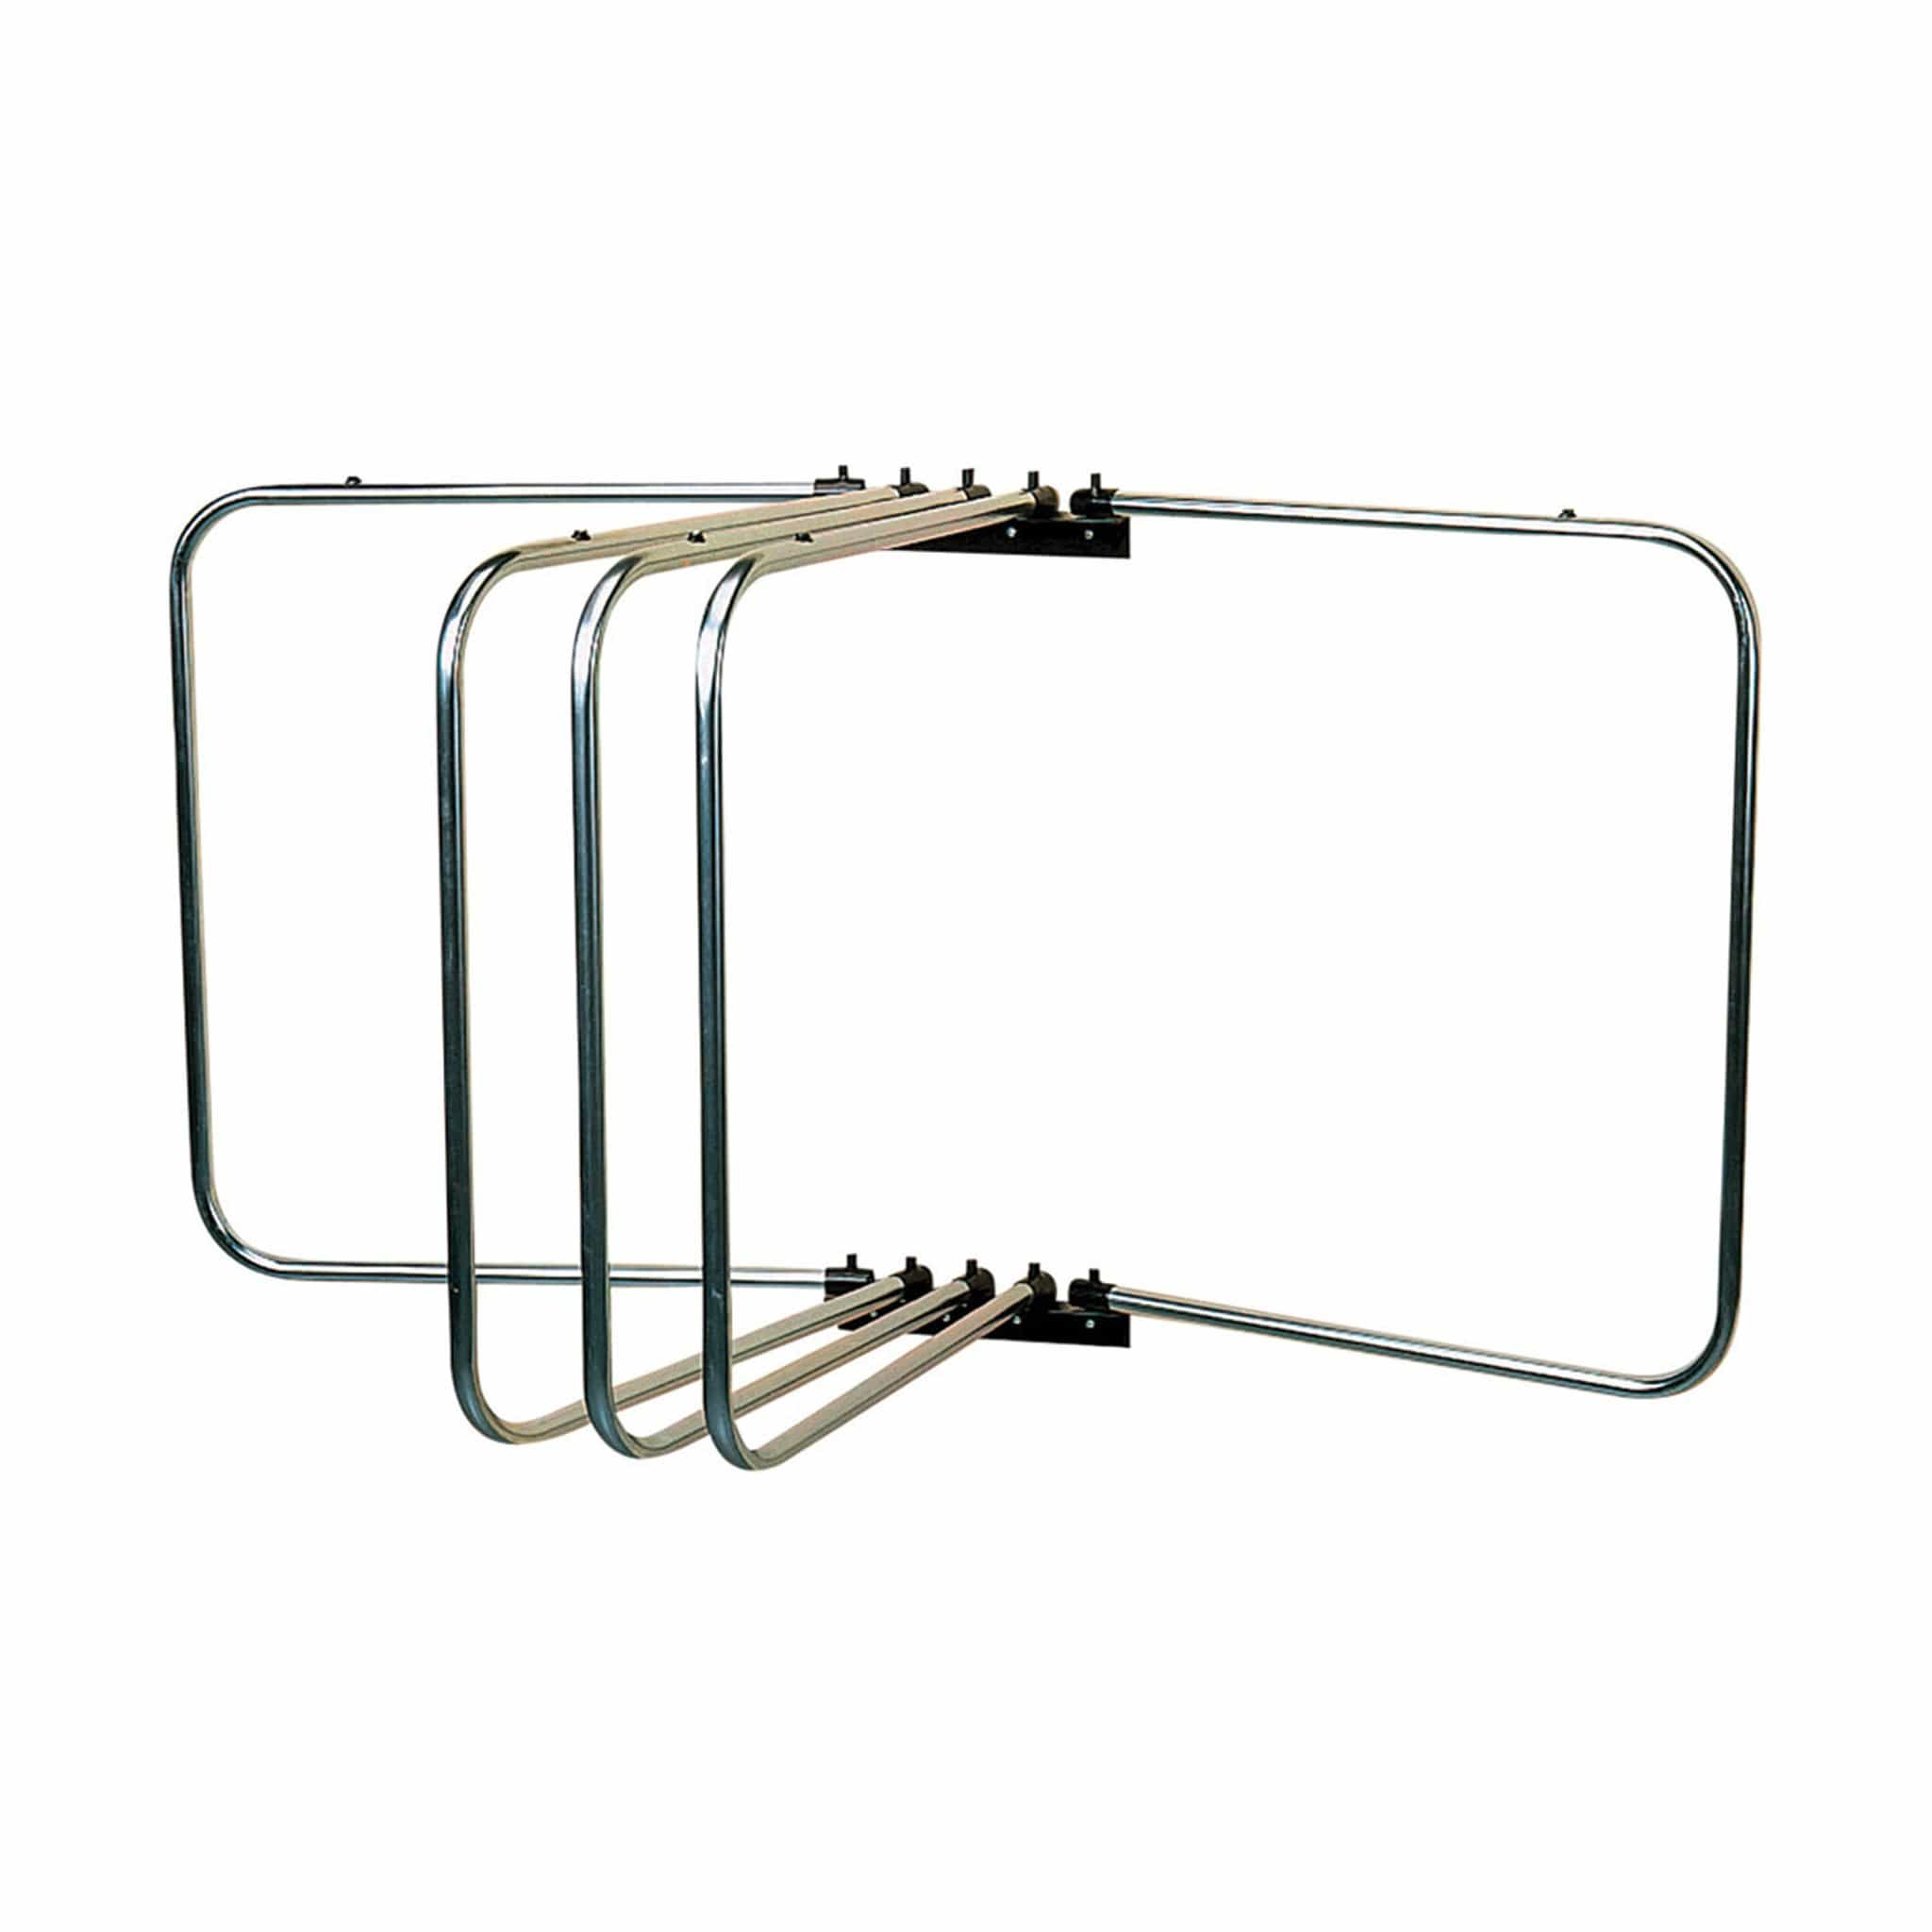 Stubbs 5-Arm Rug Rack